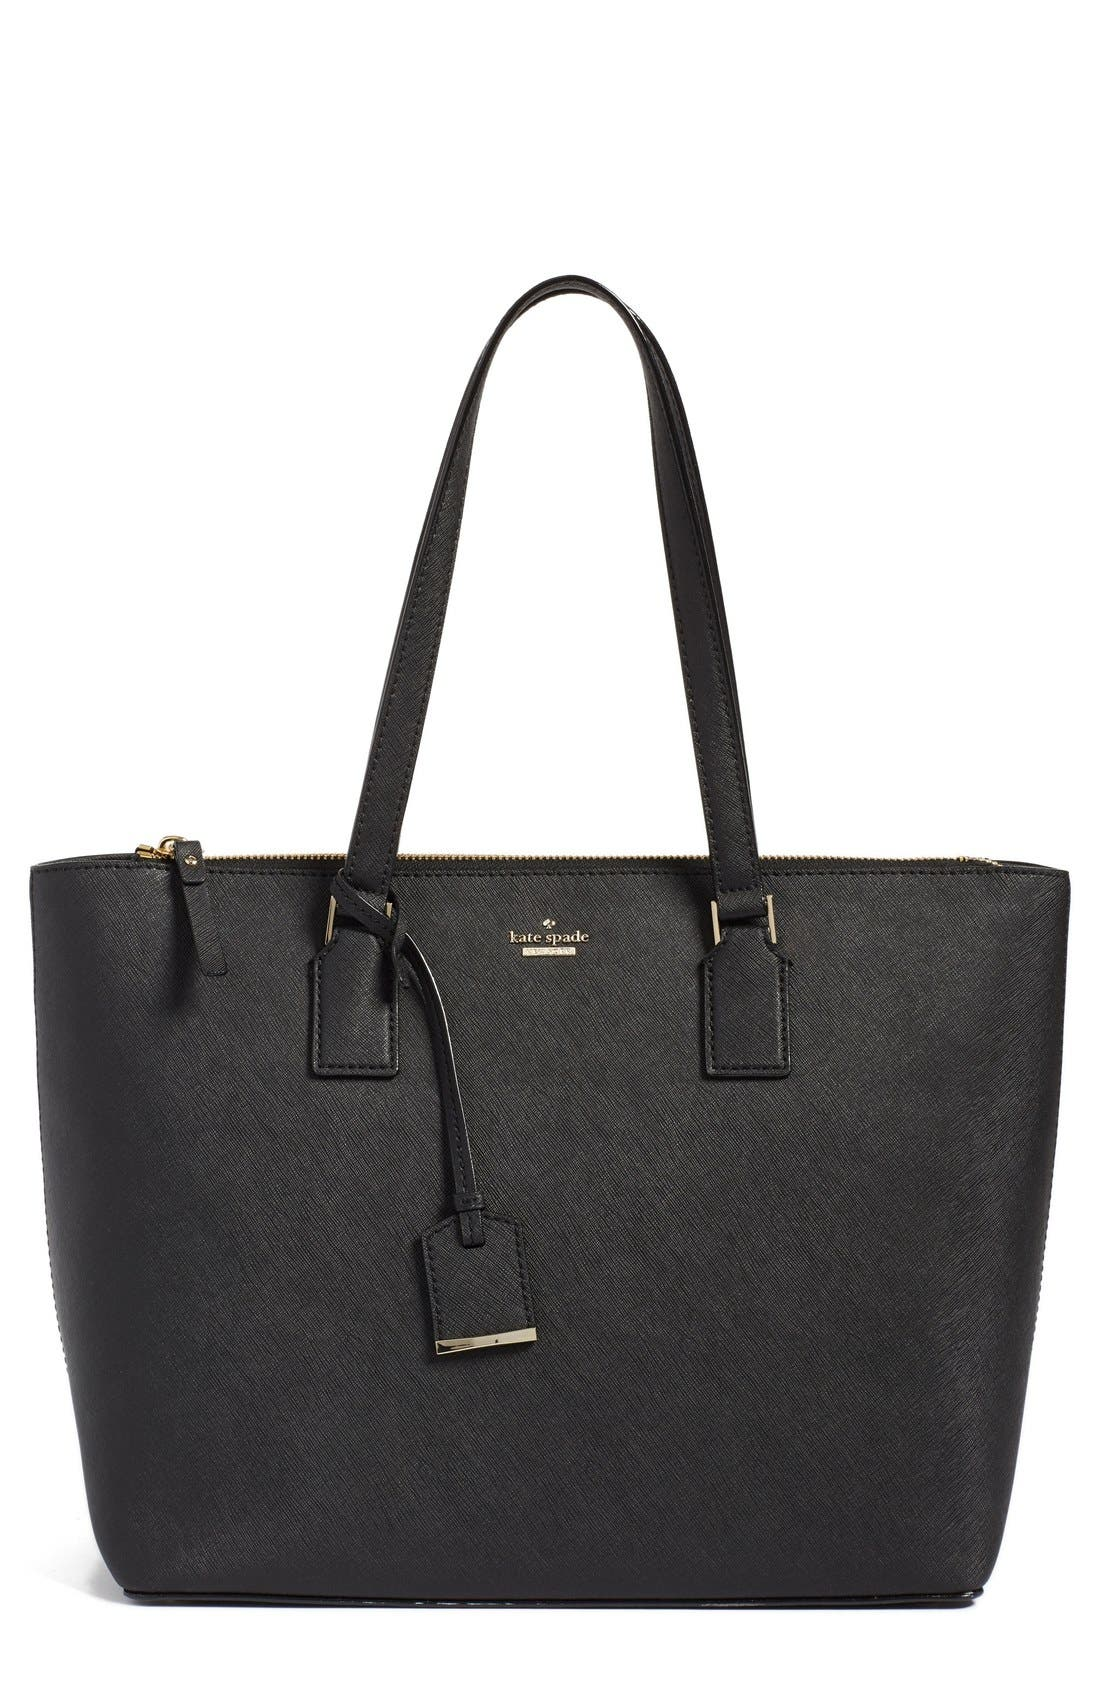 Alternate Image 1 Selected - kate spade new york 'cameron street - lucie' tote